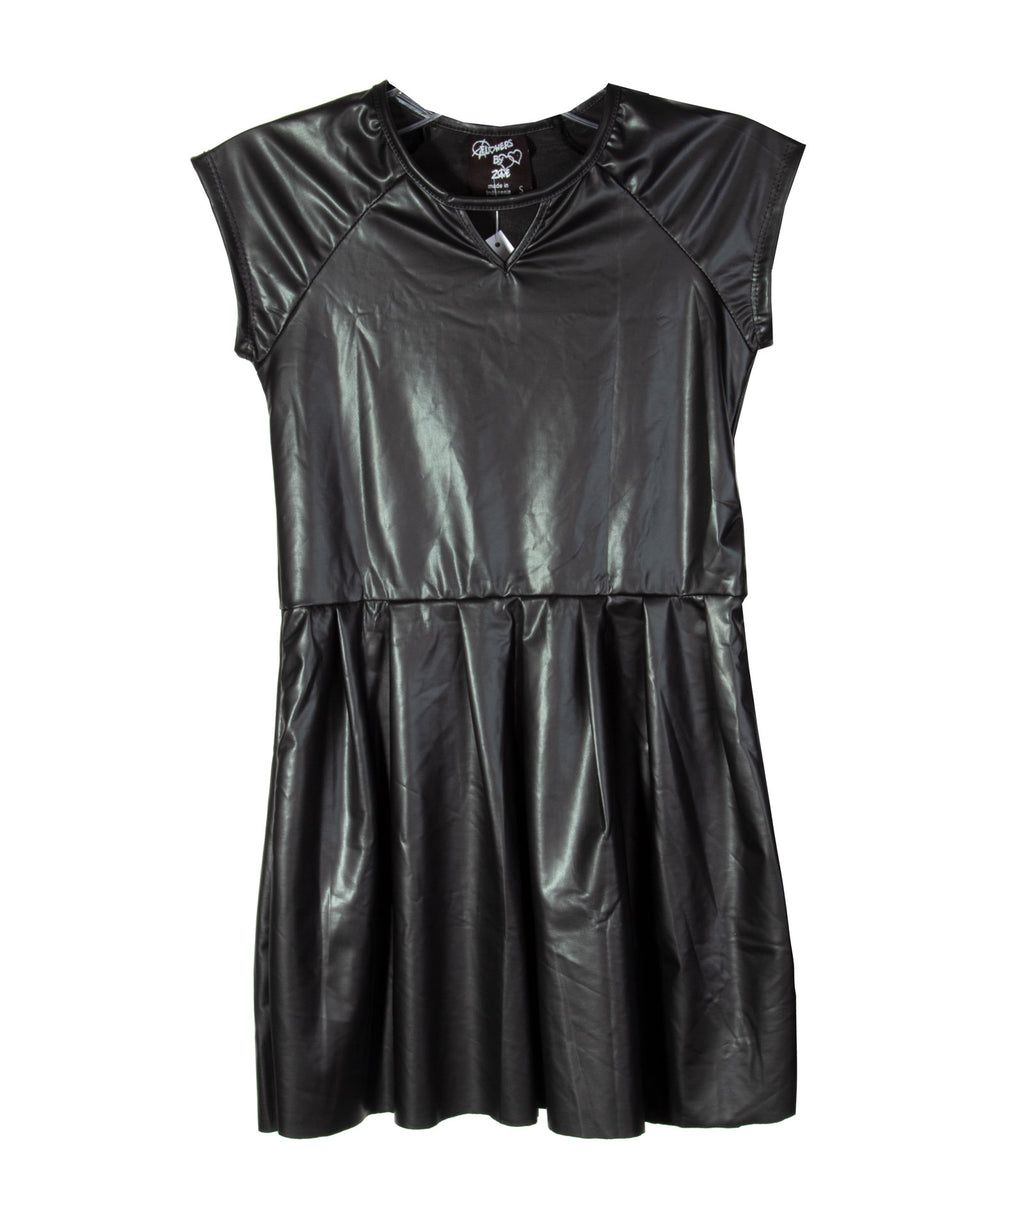 Flowers By Zoe Girls Pleather Black Dress